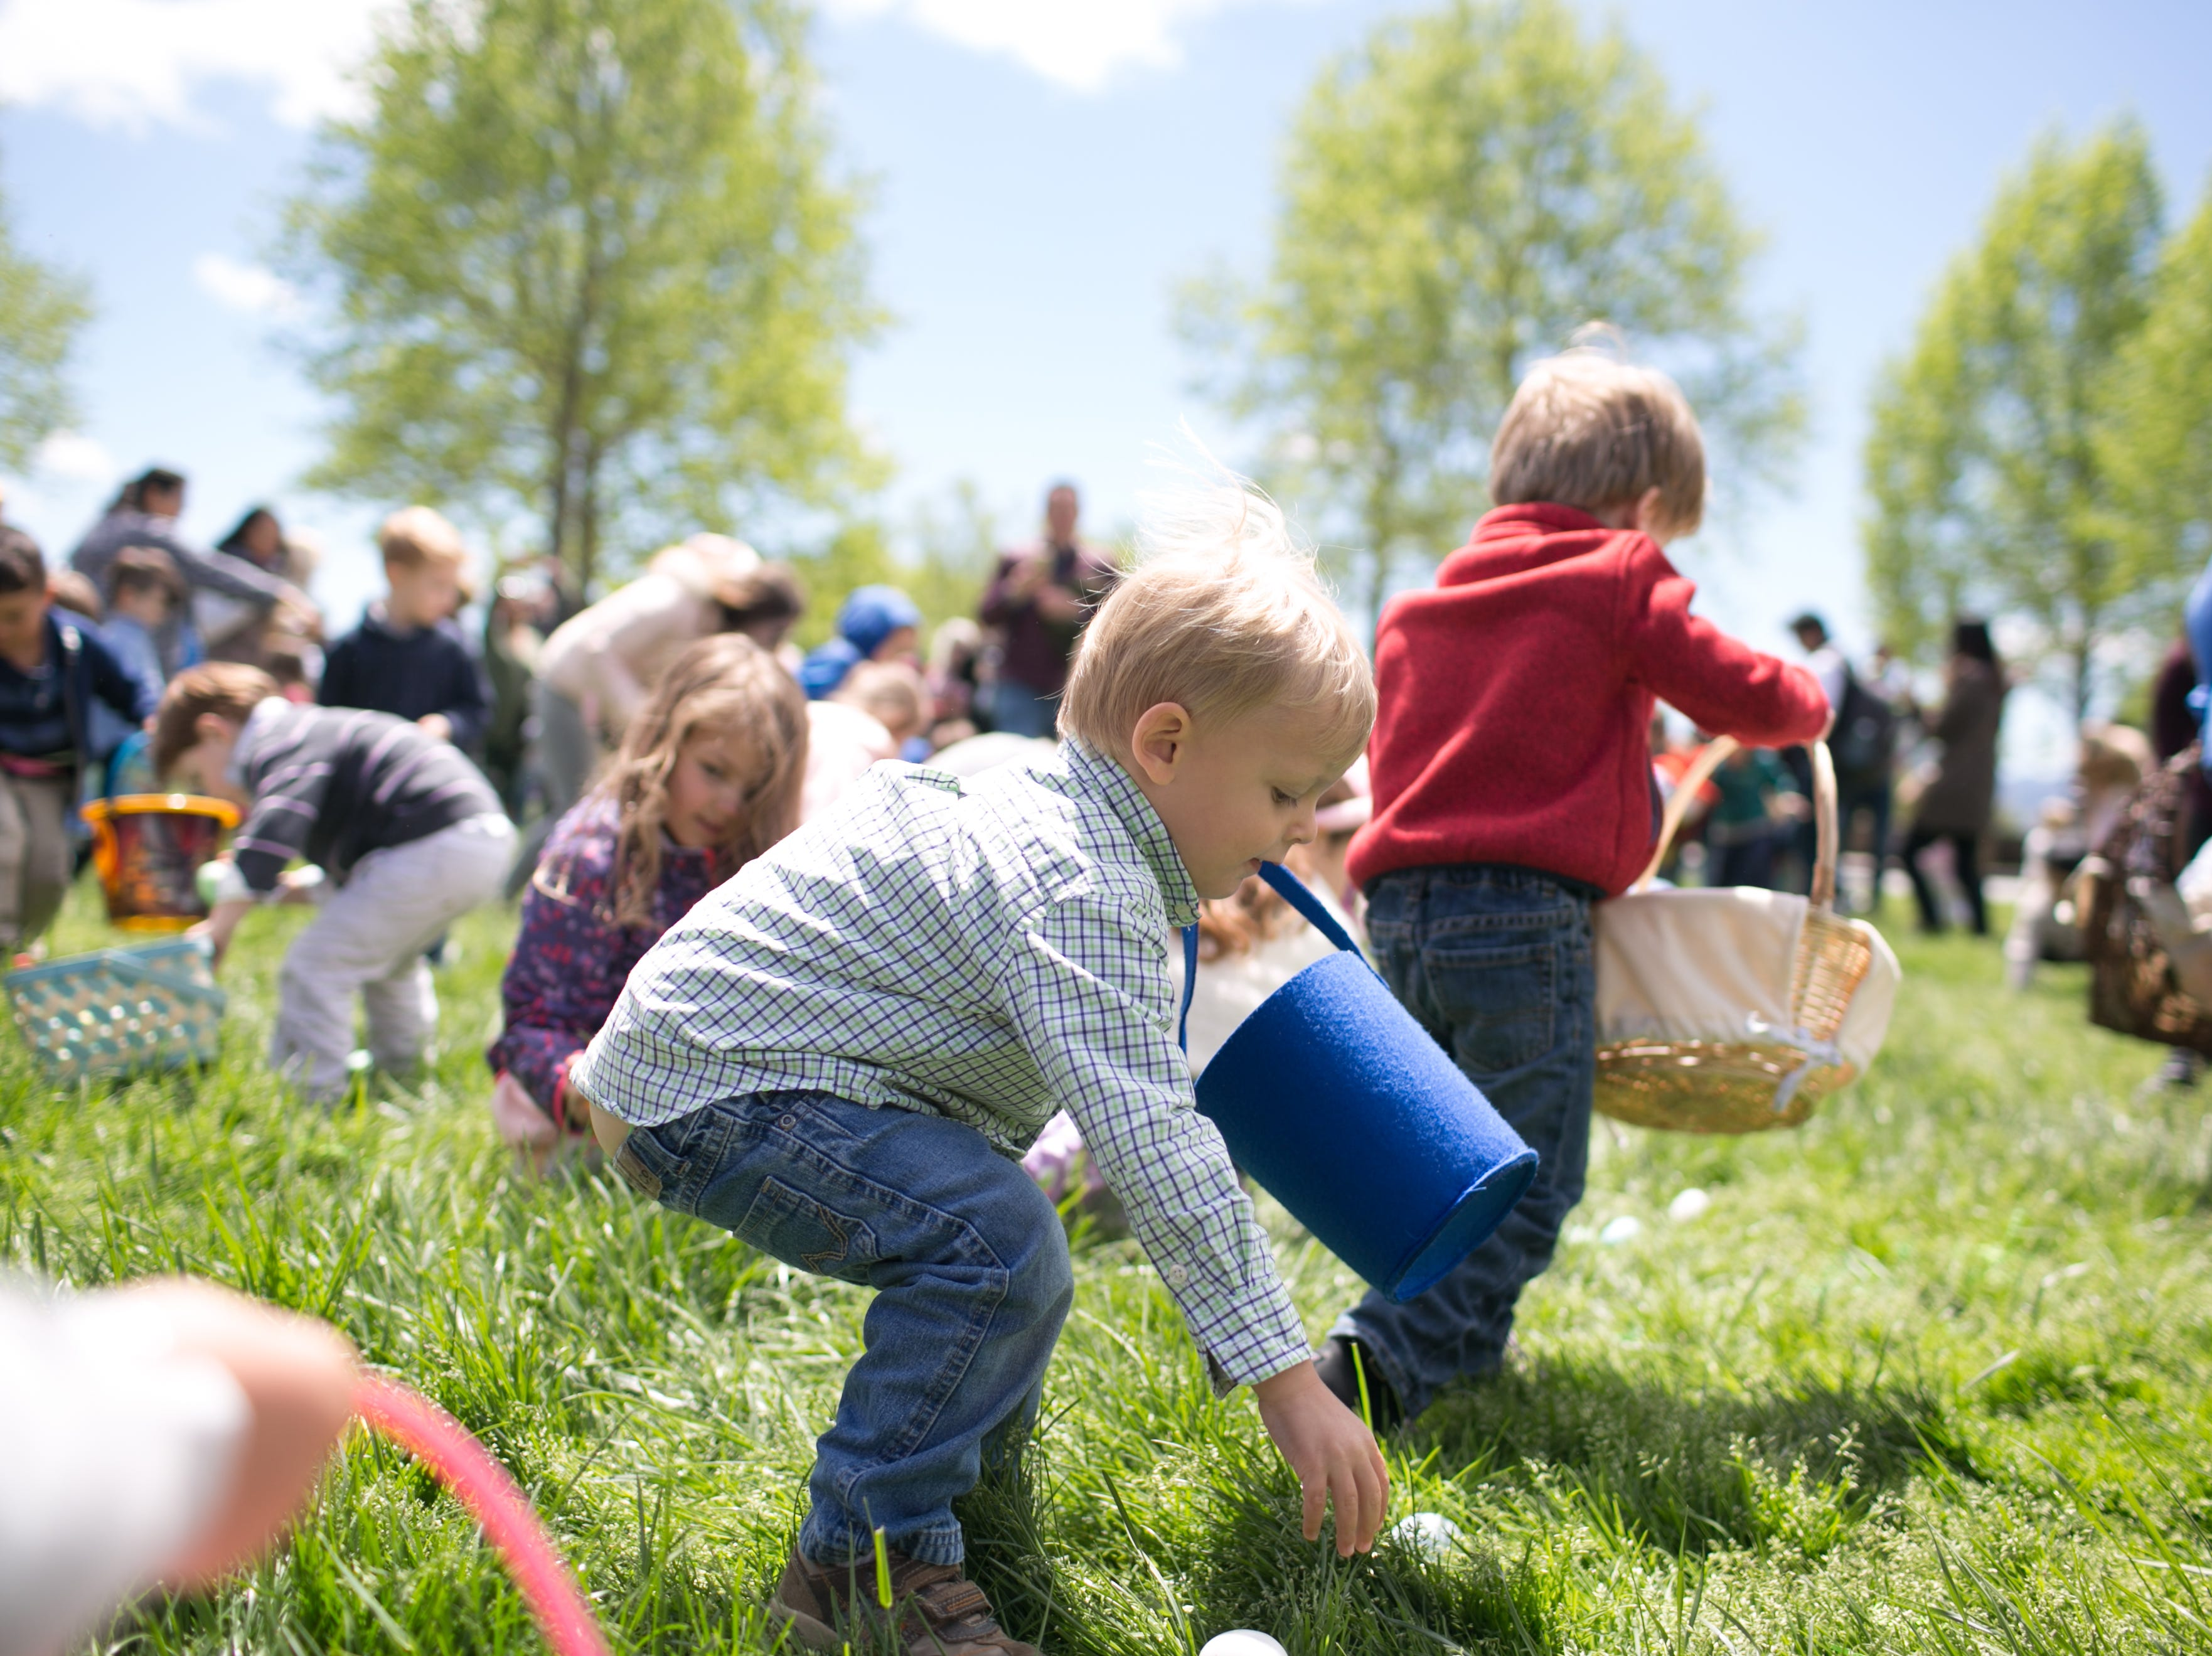 Carson Alt, 3, of Waynesville, searches for eggs during the Biltmore Estate's Easter egg hunt on April 21, 2019. Biltmore's hunt is one of the Southeast's largest, with hundreds of children ages 2–9.